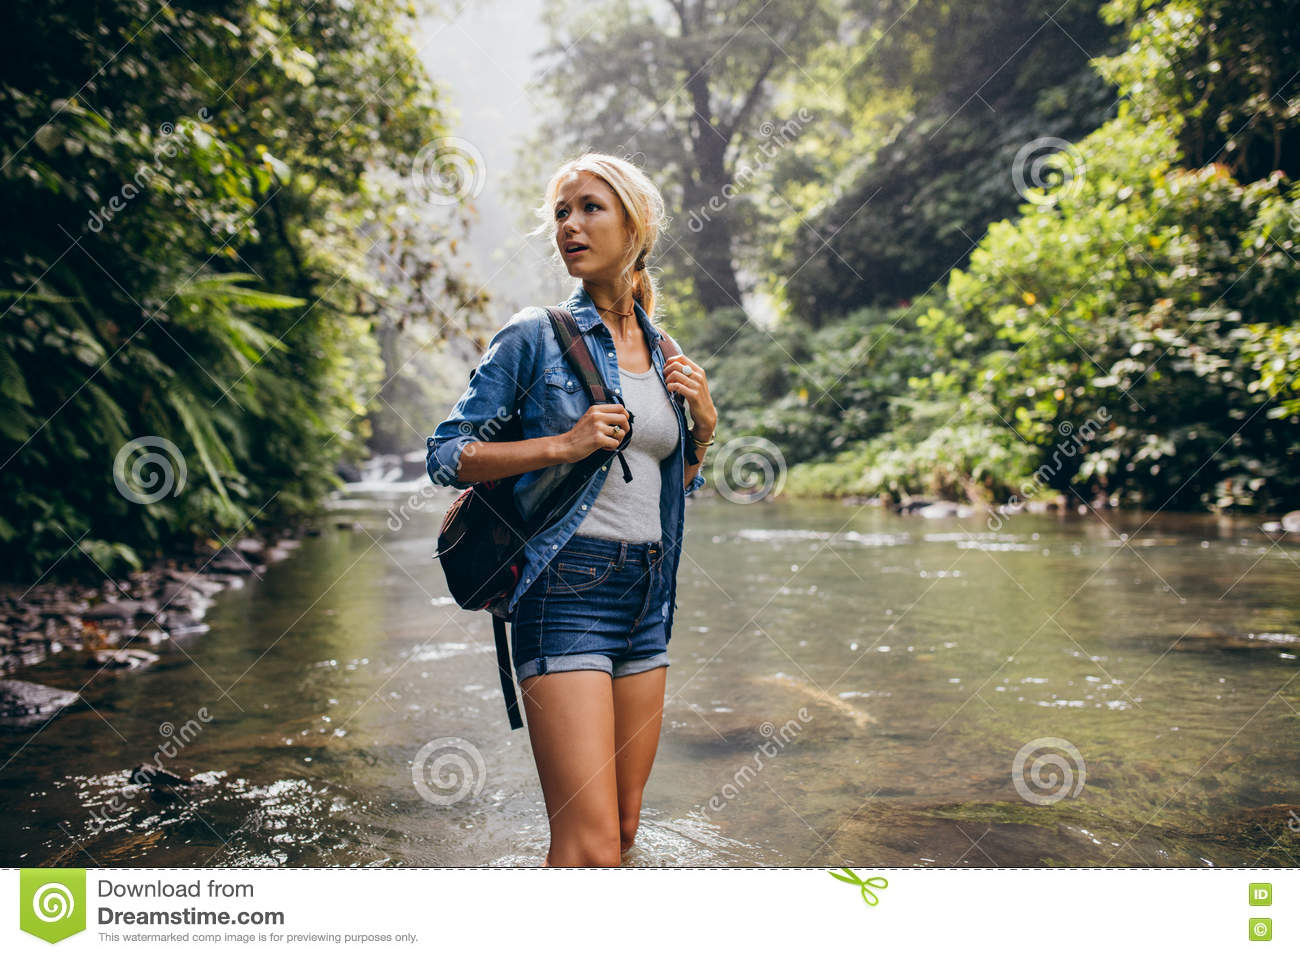 mount victoria middle eastern single women Zimbabwe - climate: zimbabwe, lying north of the tropic of capricorn, is completely within the tropics but enjoys subtropical conditions because of its high average.